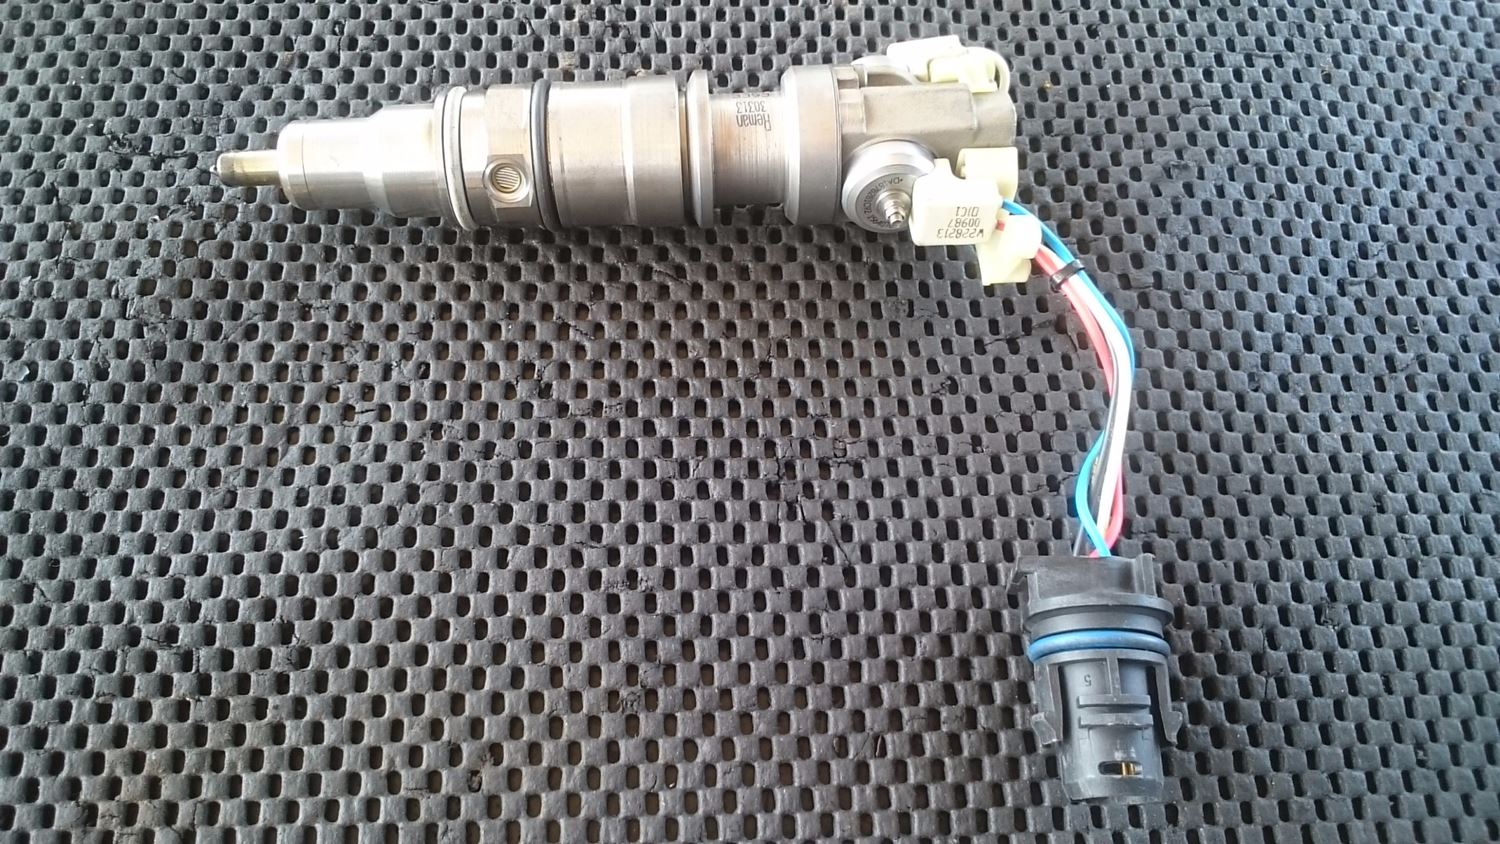 fuel injection parts new and used parts american truck chrome engine wiring harness vt365 injector wiring harness [ 1500 x 844 Pixel ]